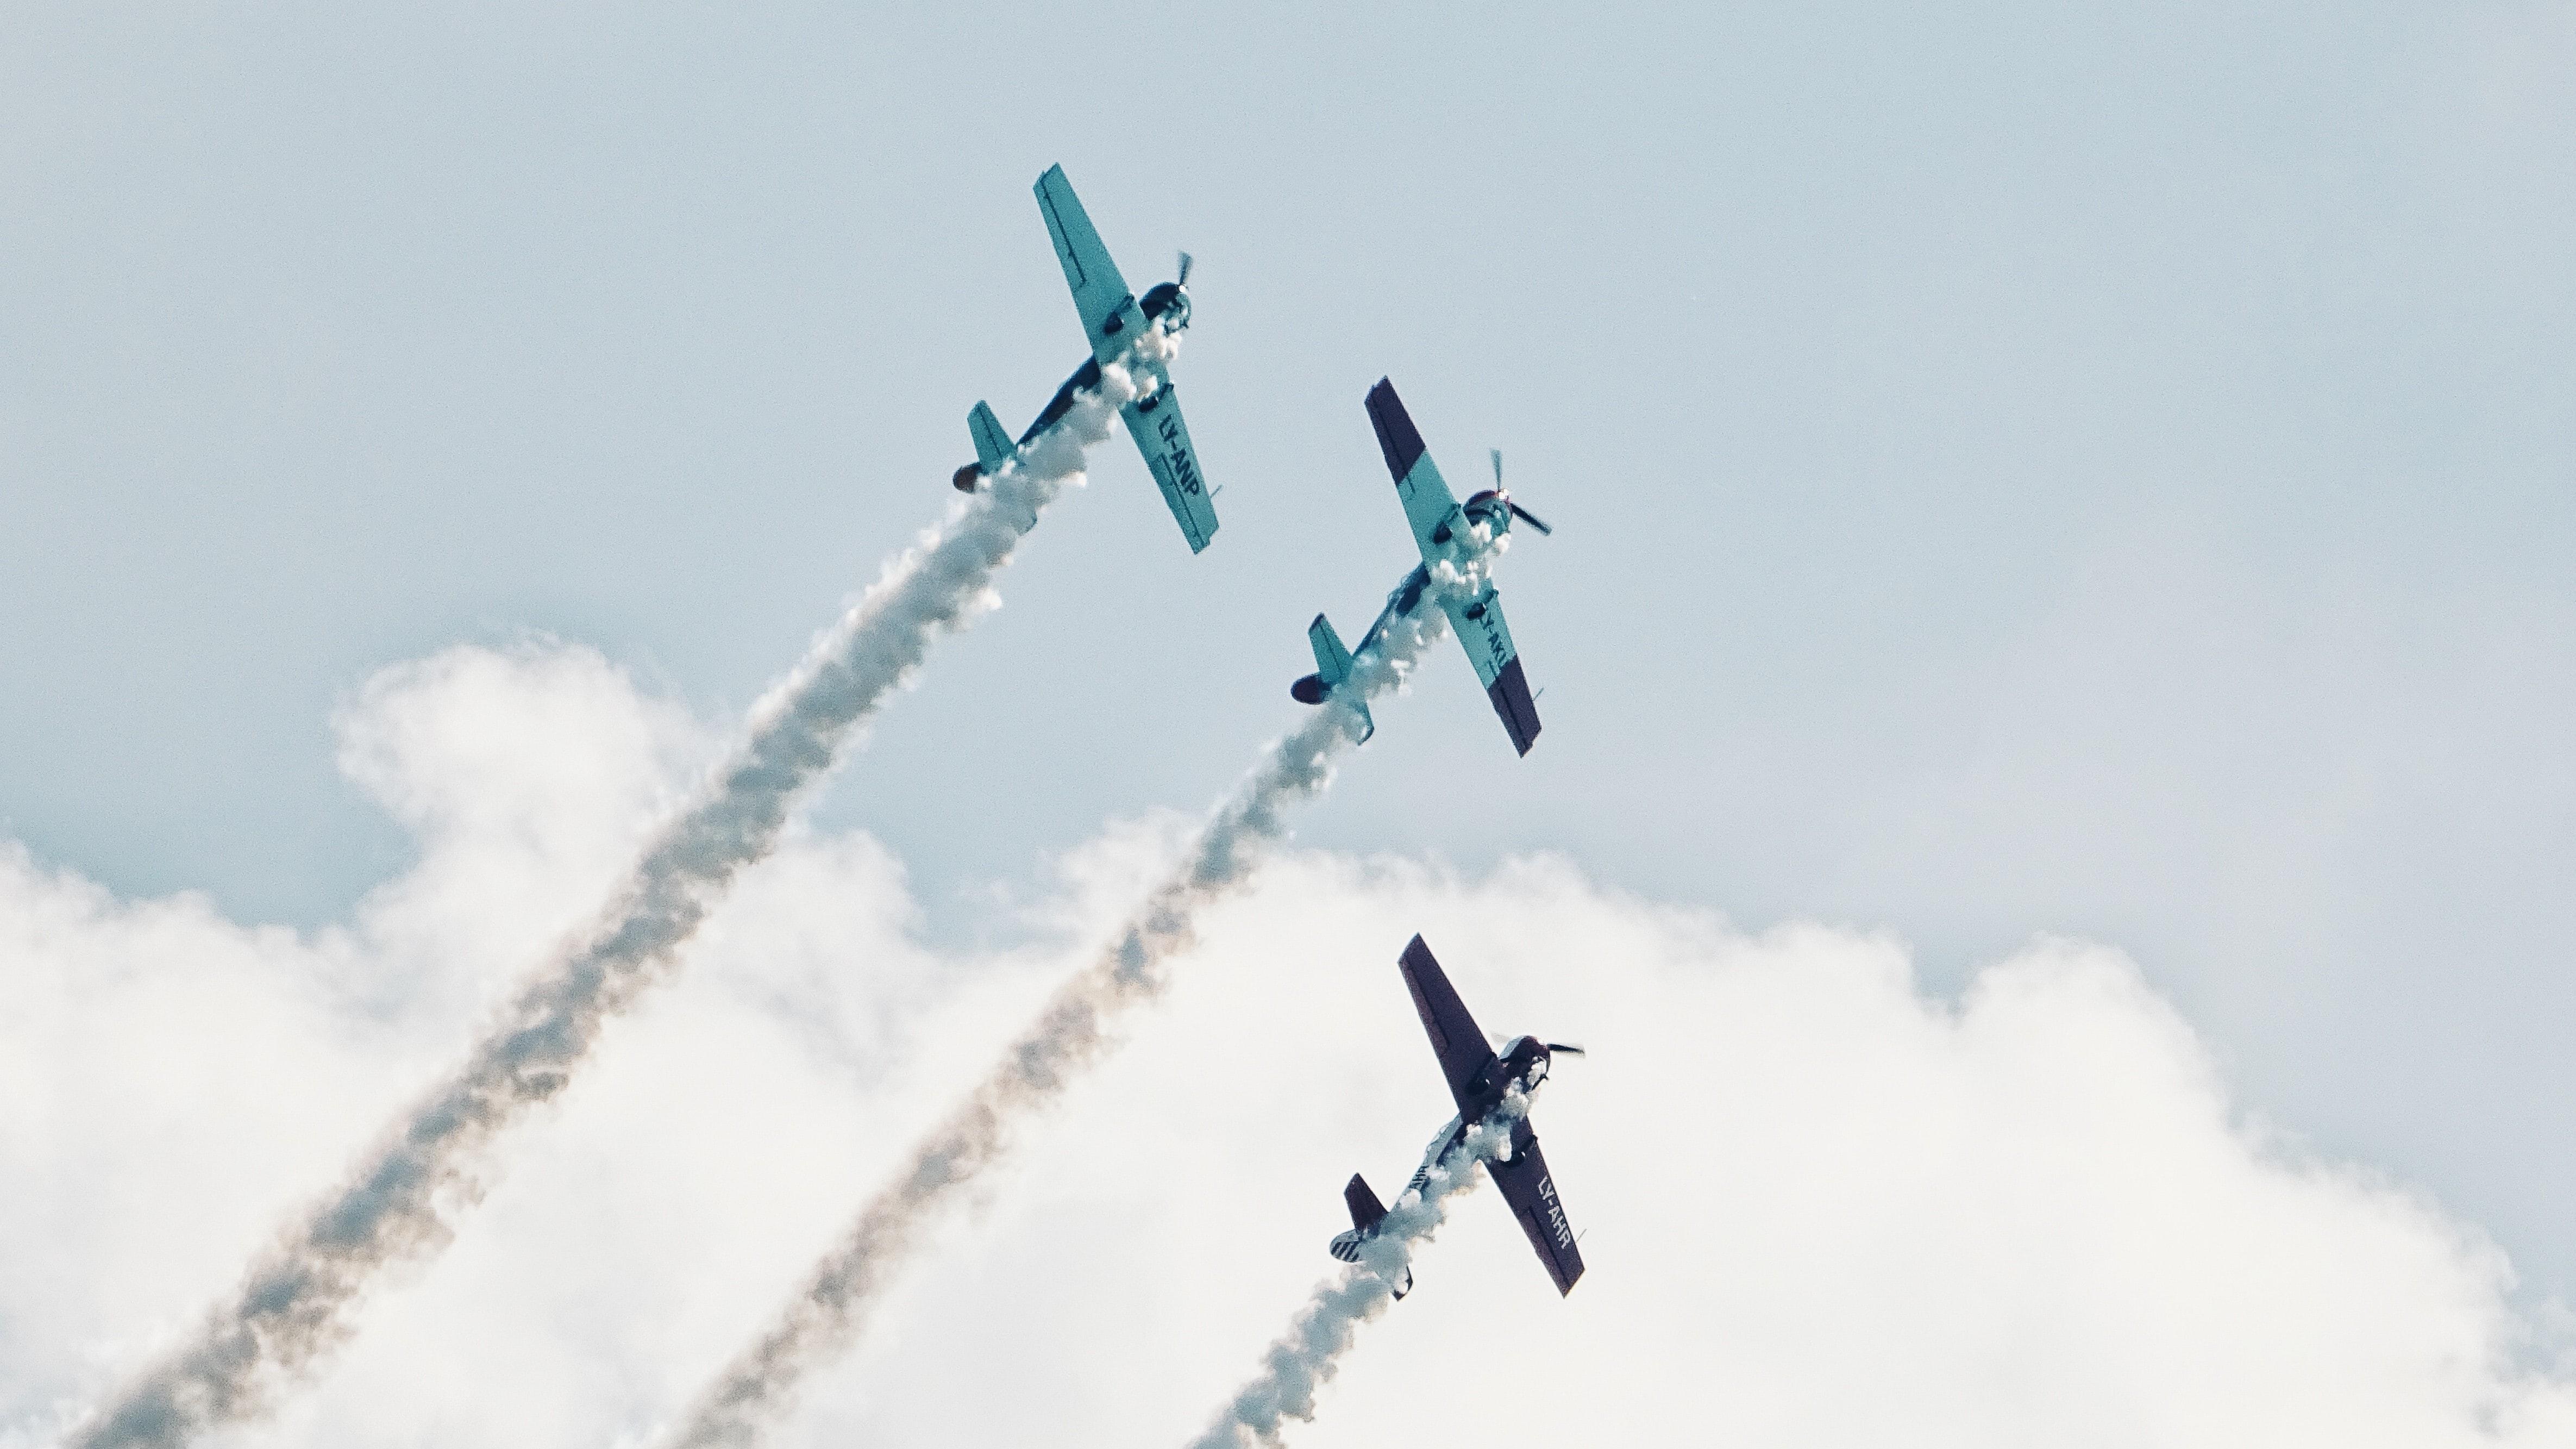 Three small planes leaving white smoke trails behind at an air show